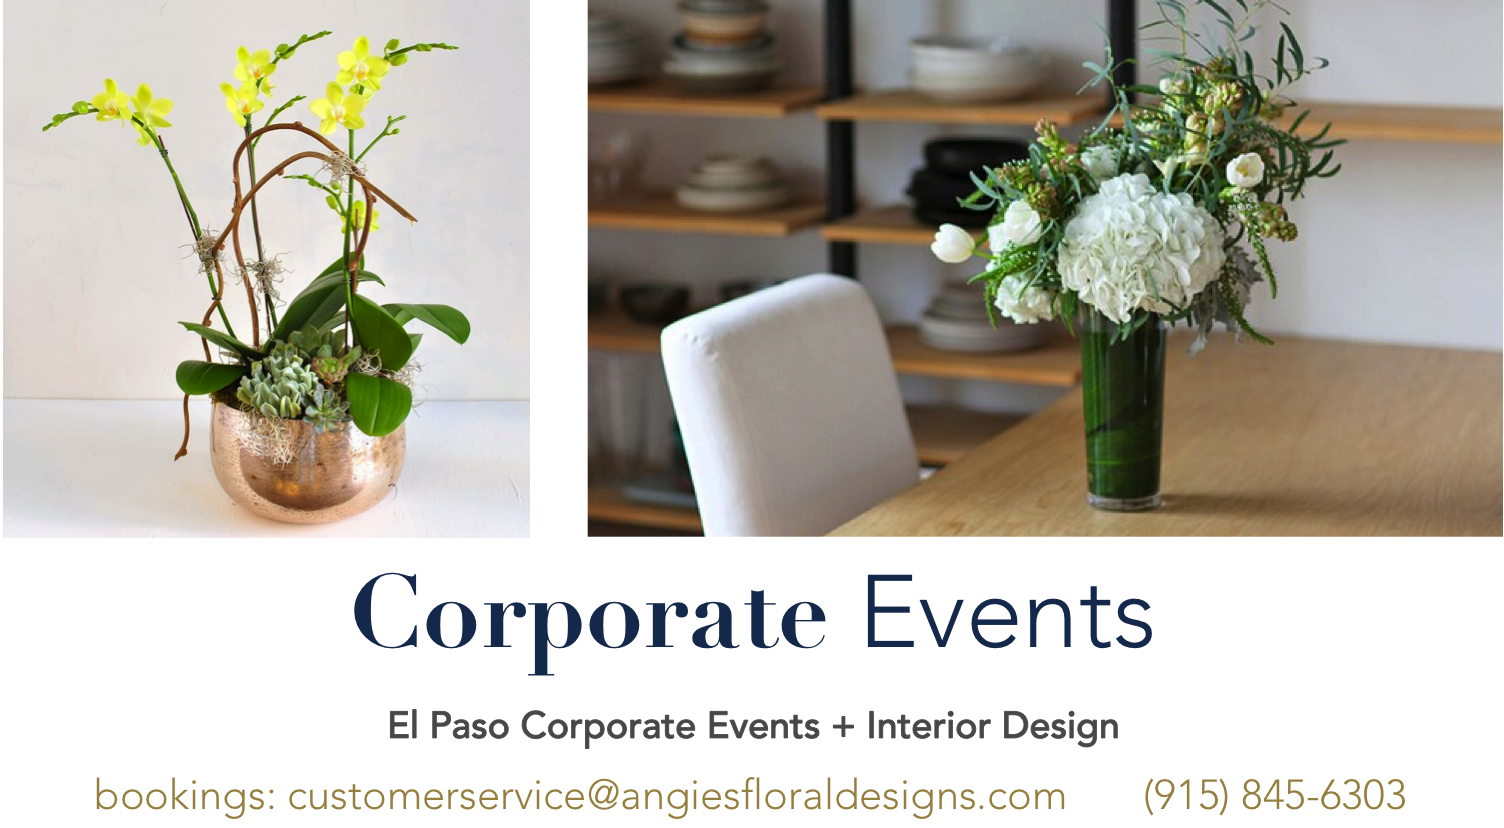 0-angies-floral-designs-corporate-events-79912-handcrafted-gifts-same-day-delivery-roses-flowershop-el-paso-texas-79912-shop-online-flowers-florist-best-florist.png